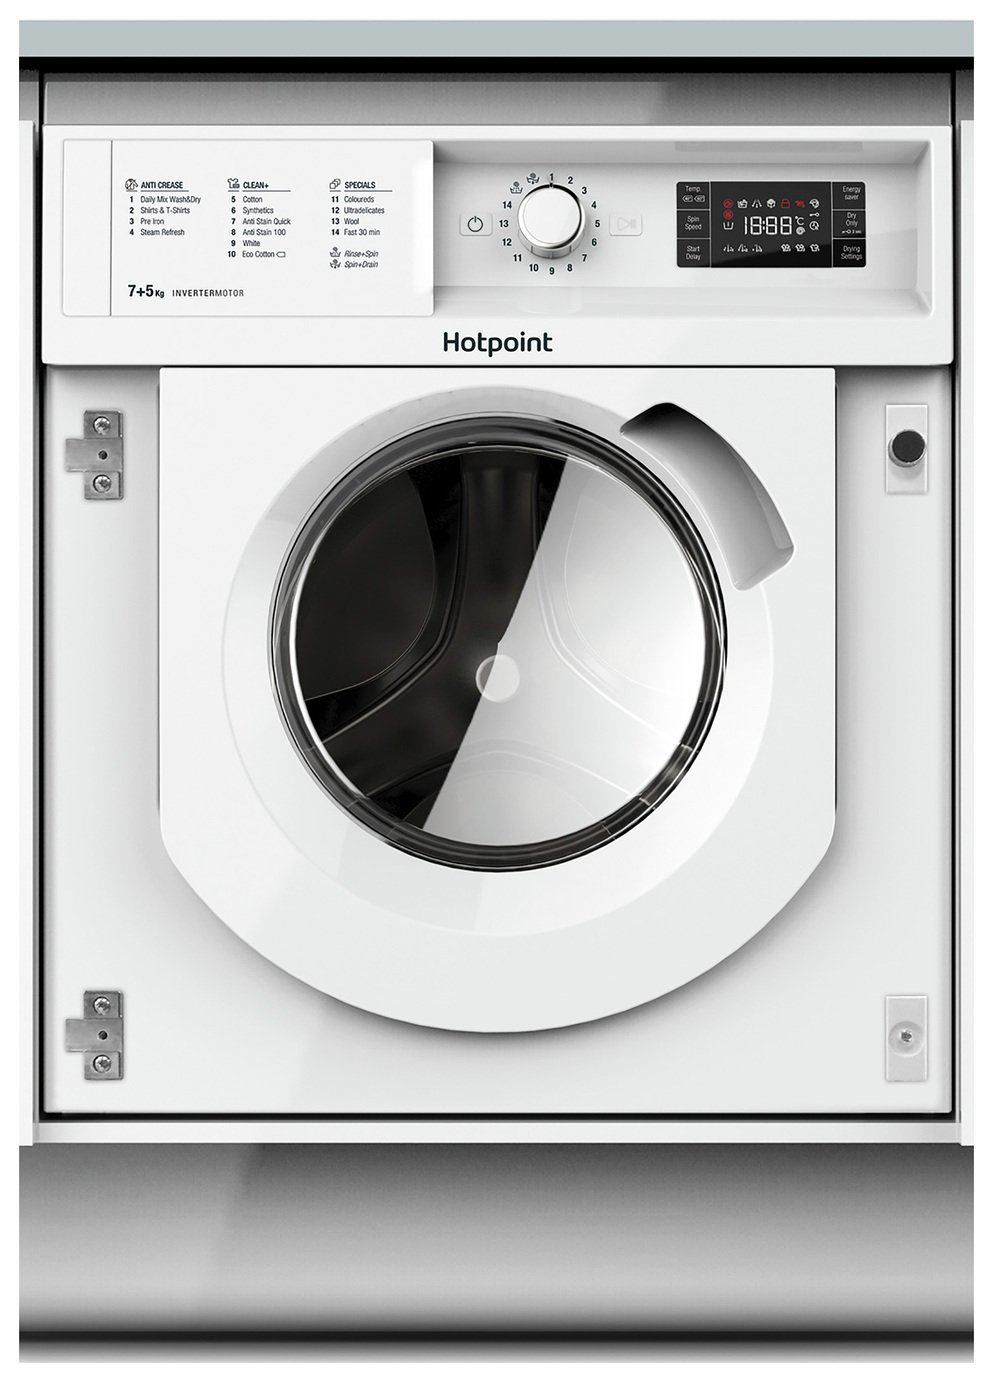 Hotpoint BIWDHG7148UK 7KG 1400 Spin Washing Machine - White